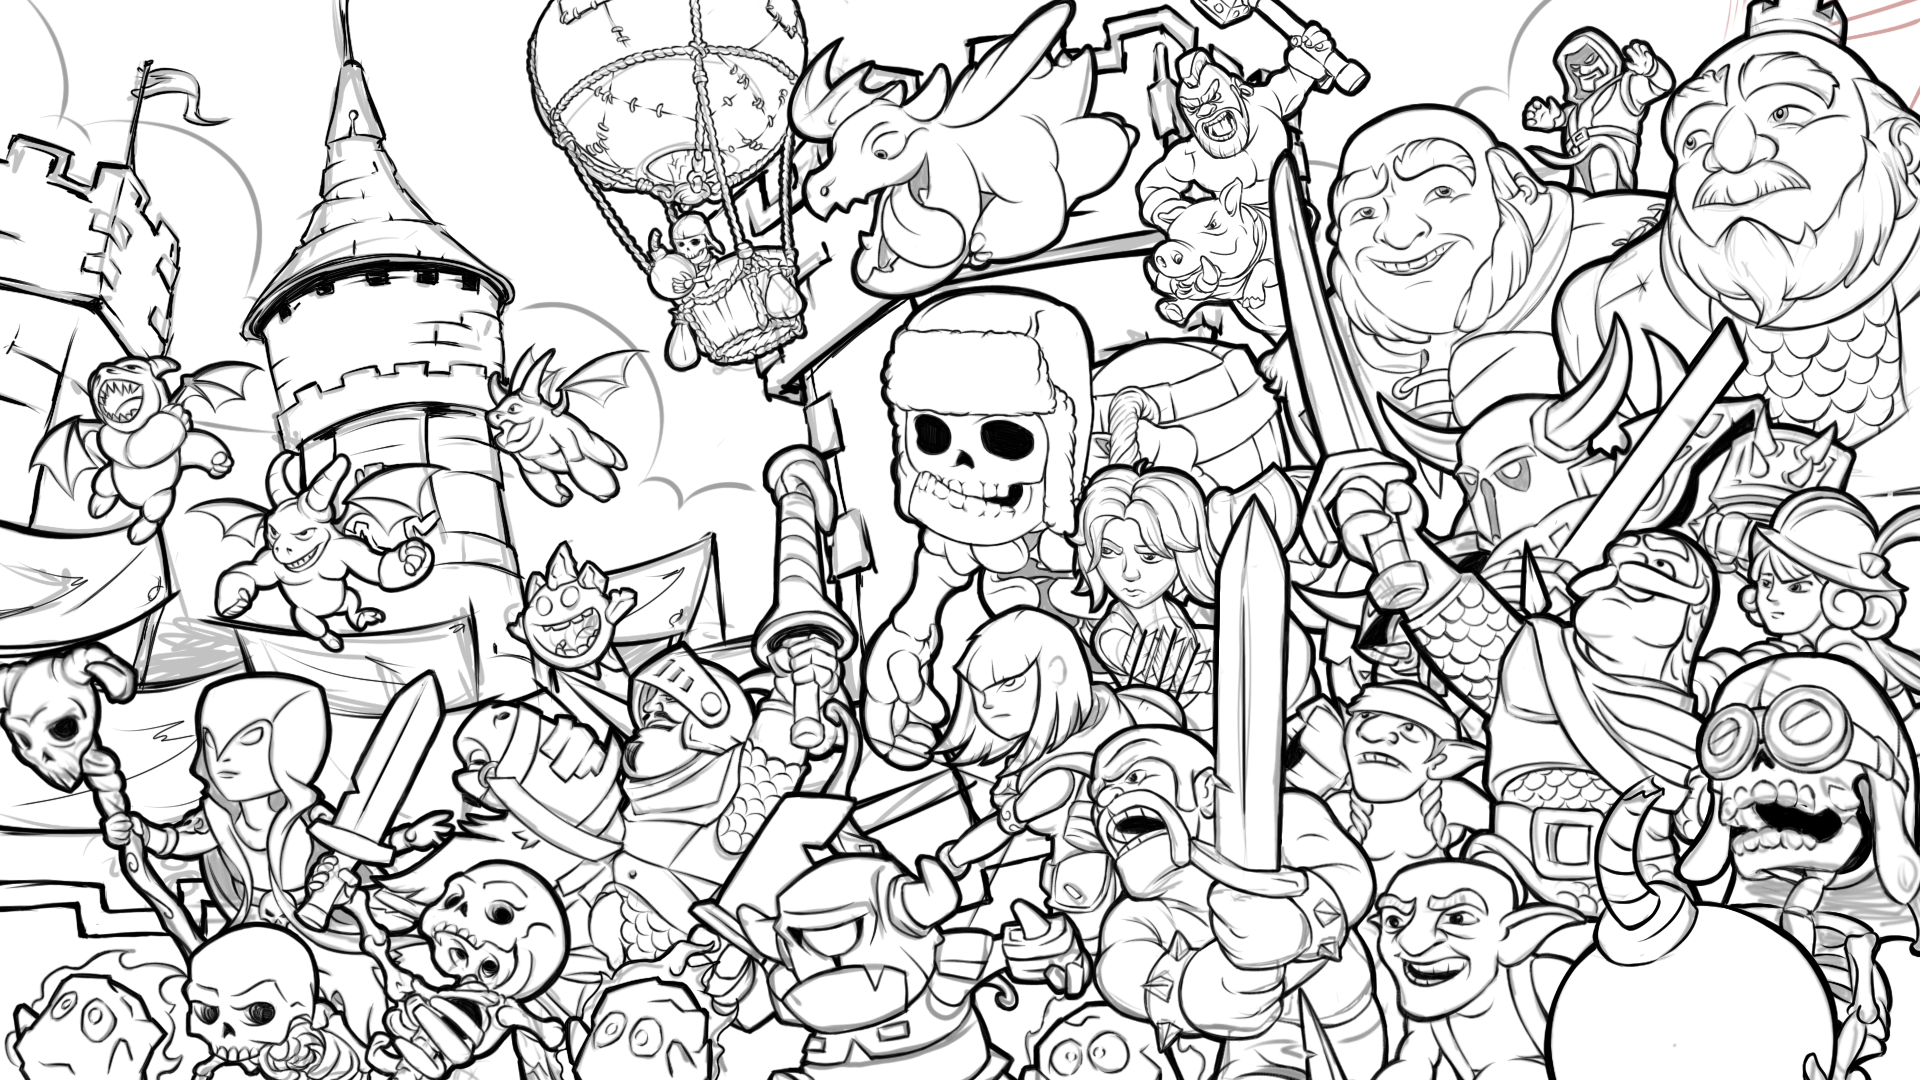 clash royale tribute (WIP) by ninjakimm